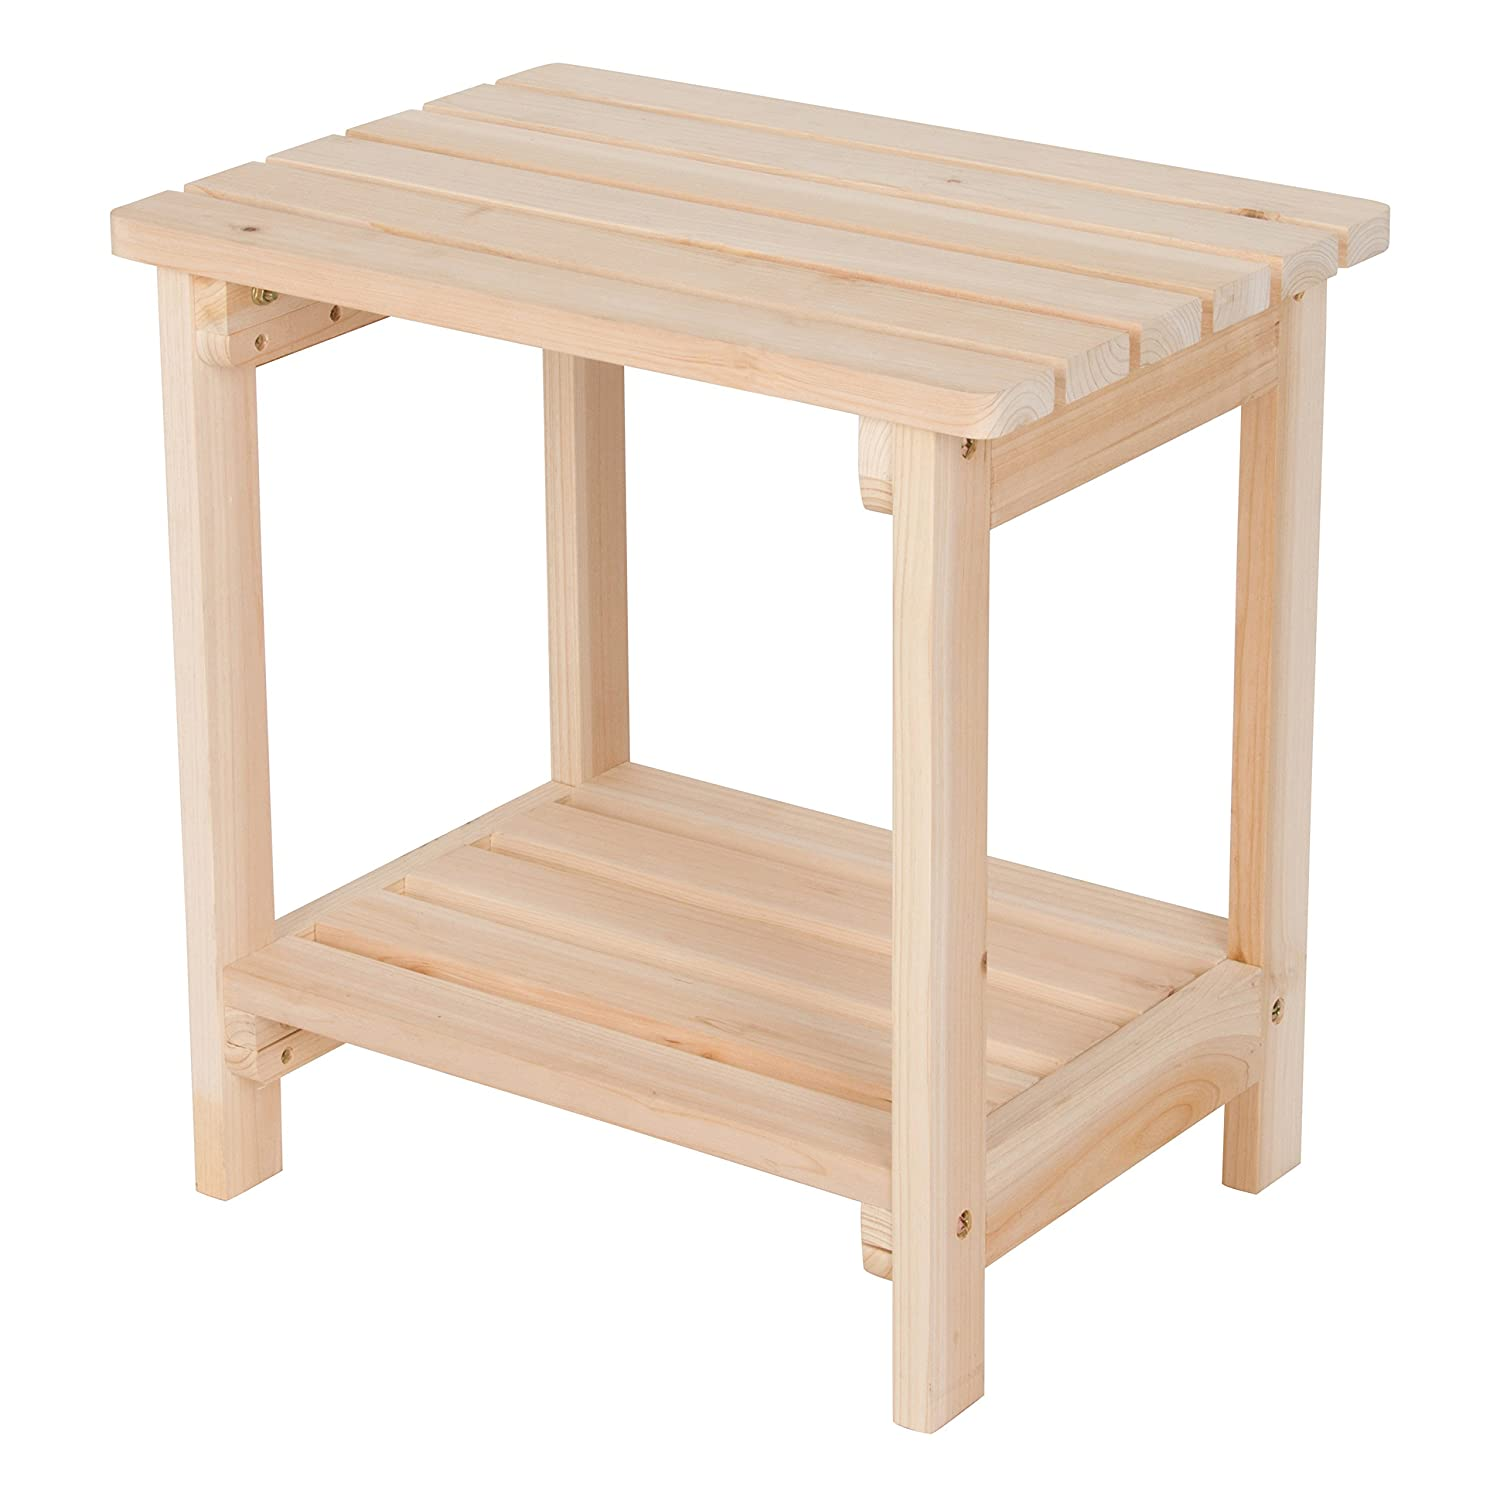 Shine Company Inc. 4104N Rectangular Side Table, Natural